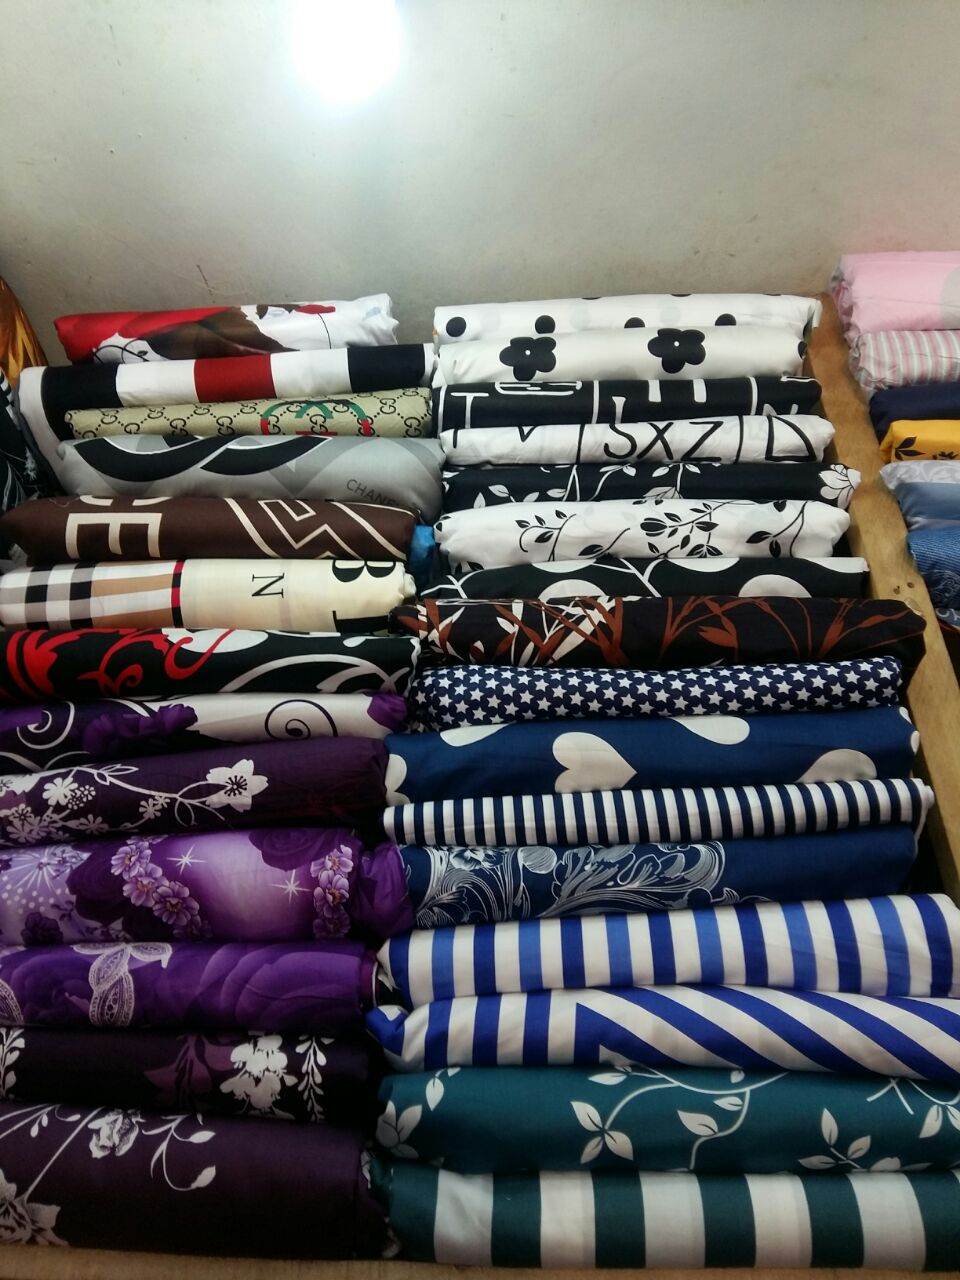 Buy Your Quality And Affordable Bedsheets,duvets,towels And Shower Curtains  For Your Home,hotels,hostels,boarding Houses. Different Sizes +strong  Delivery ...